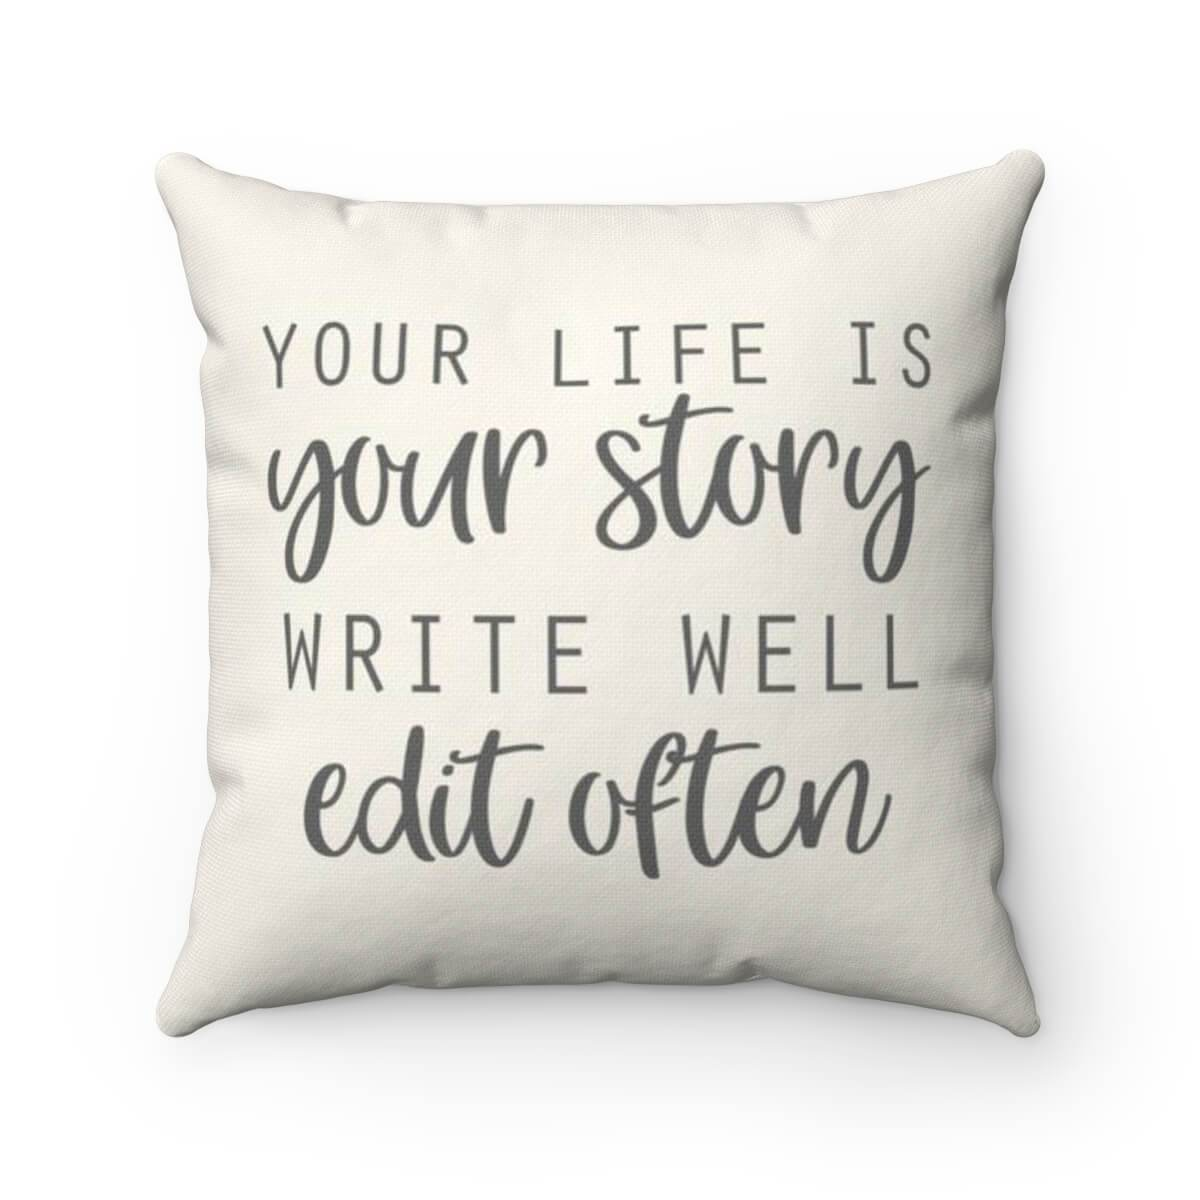 Your Life Is Your Story - Pillow